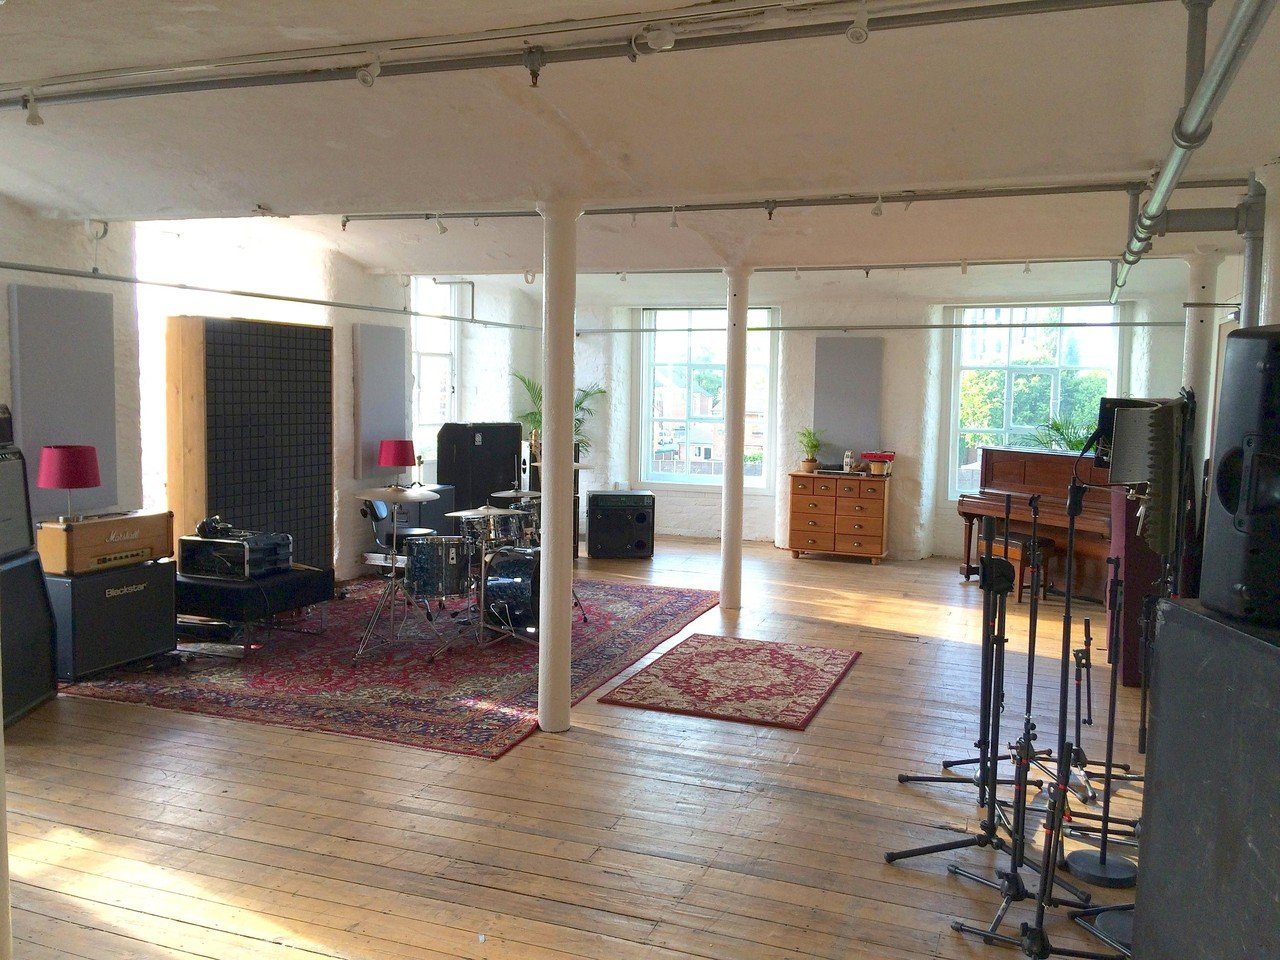 Manchester workshop spaces Unusual Hope Mill Recording Studios image 1